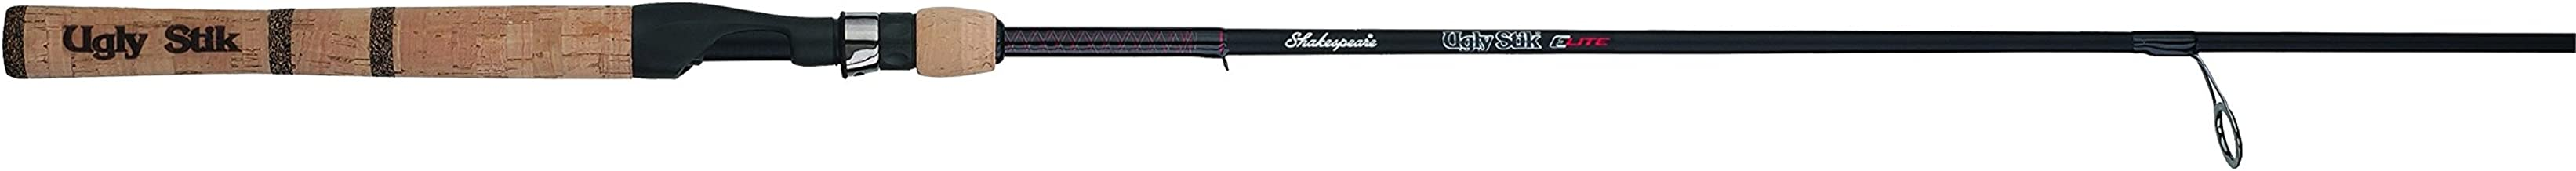 Ugly Stik Elite Spinning Rod 6' - Medium - 2pc